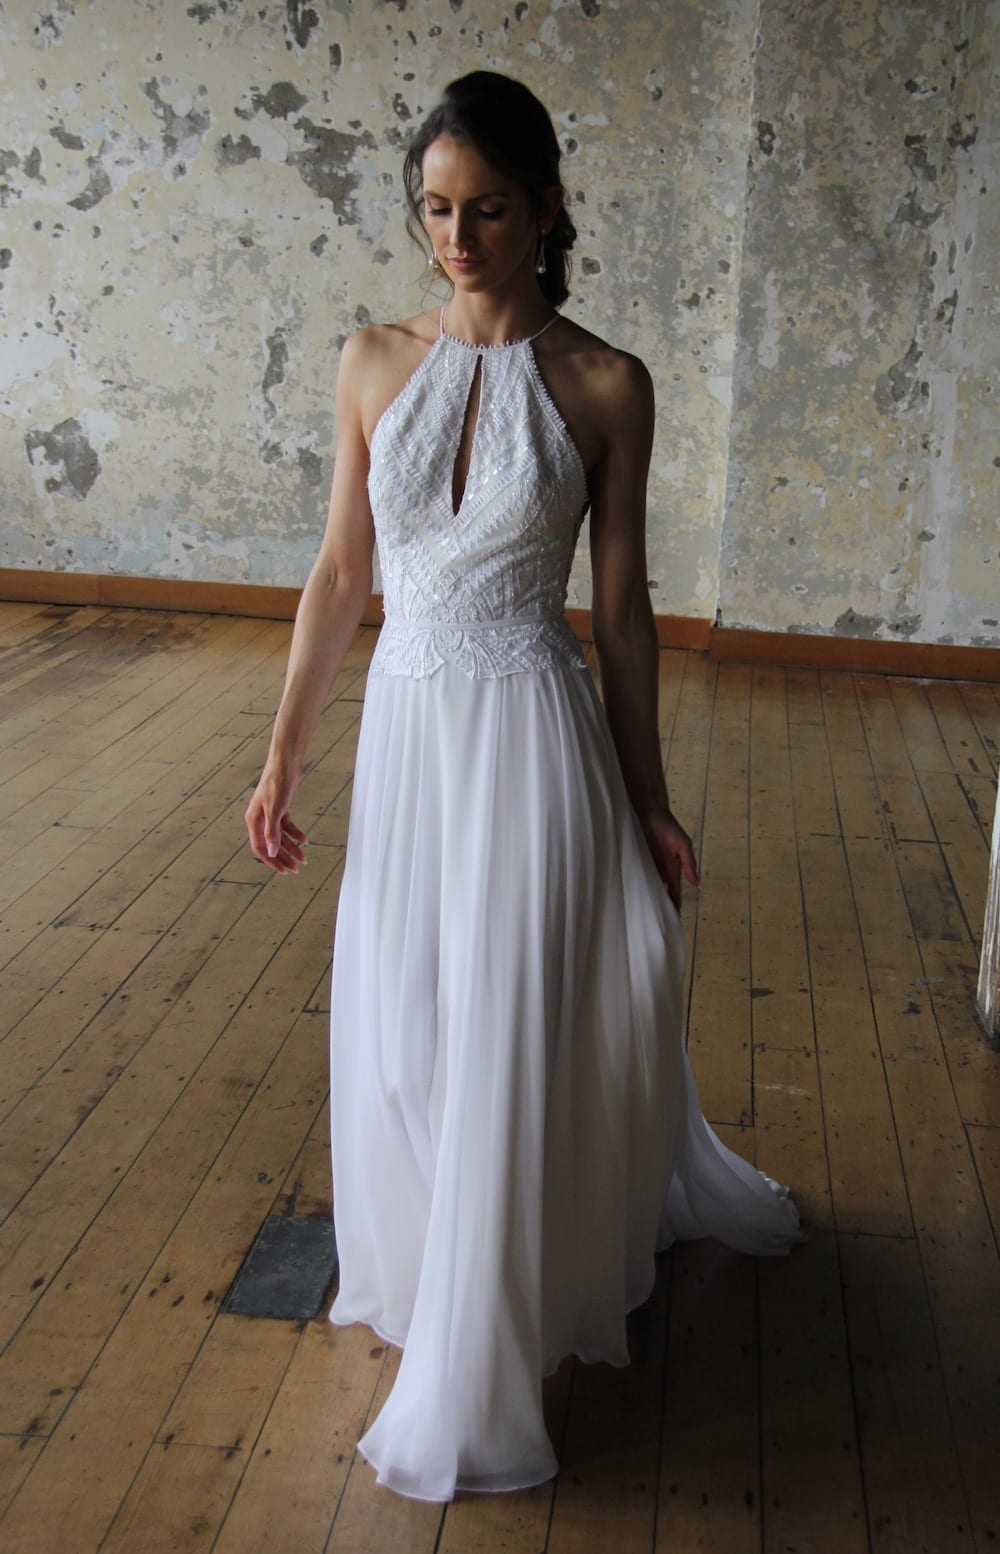 Female model wearing Vinka Design Modern Muse Wedding Dress. In chic warehouse the front detail of a light, halter-necked gown with a fluid chiffon skirt.